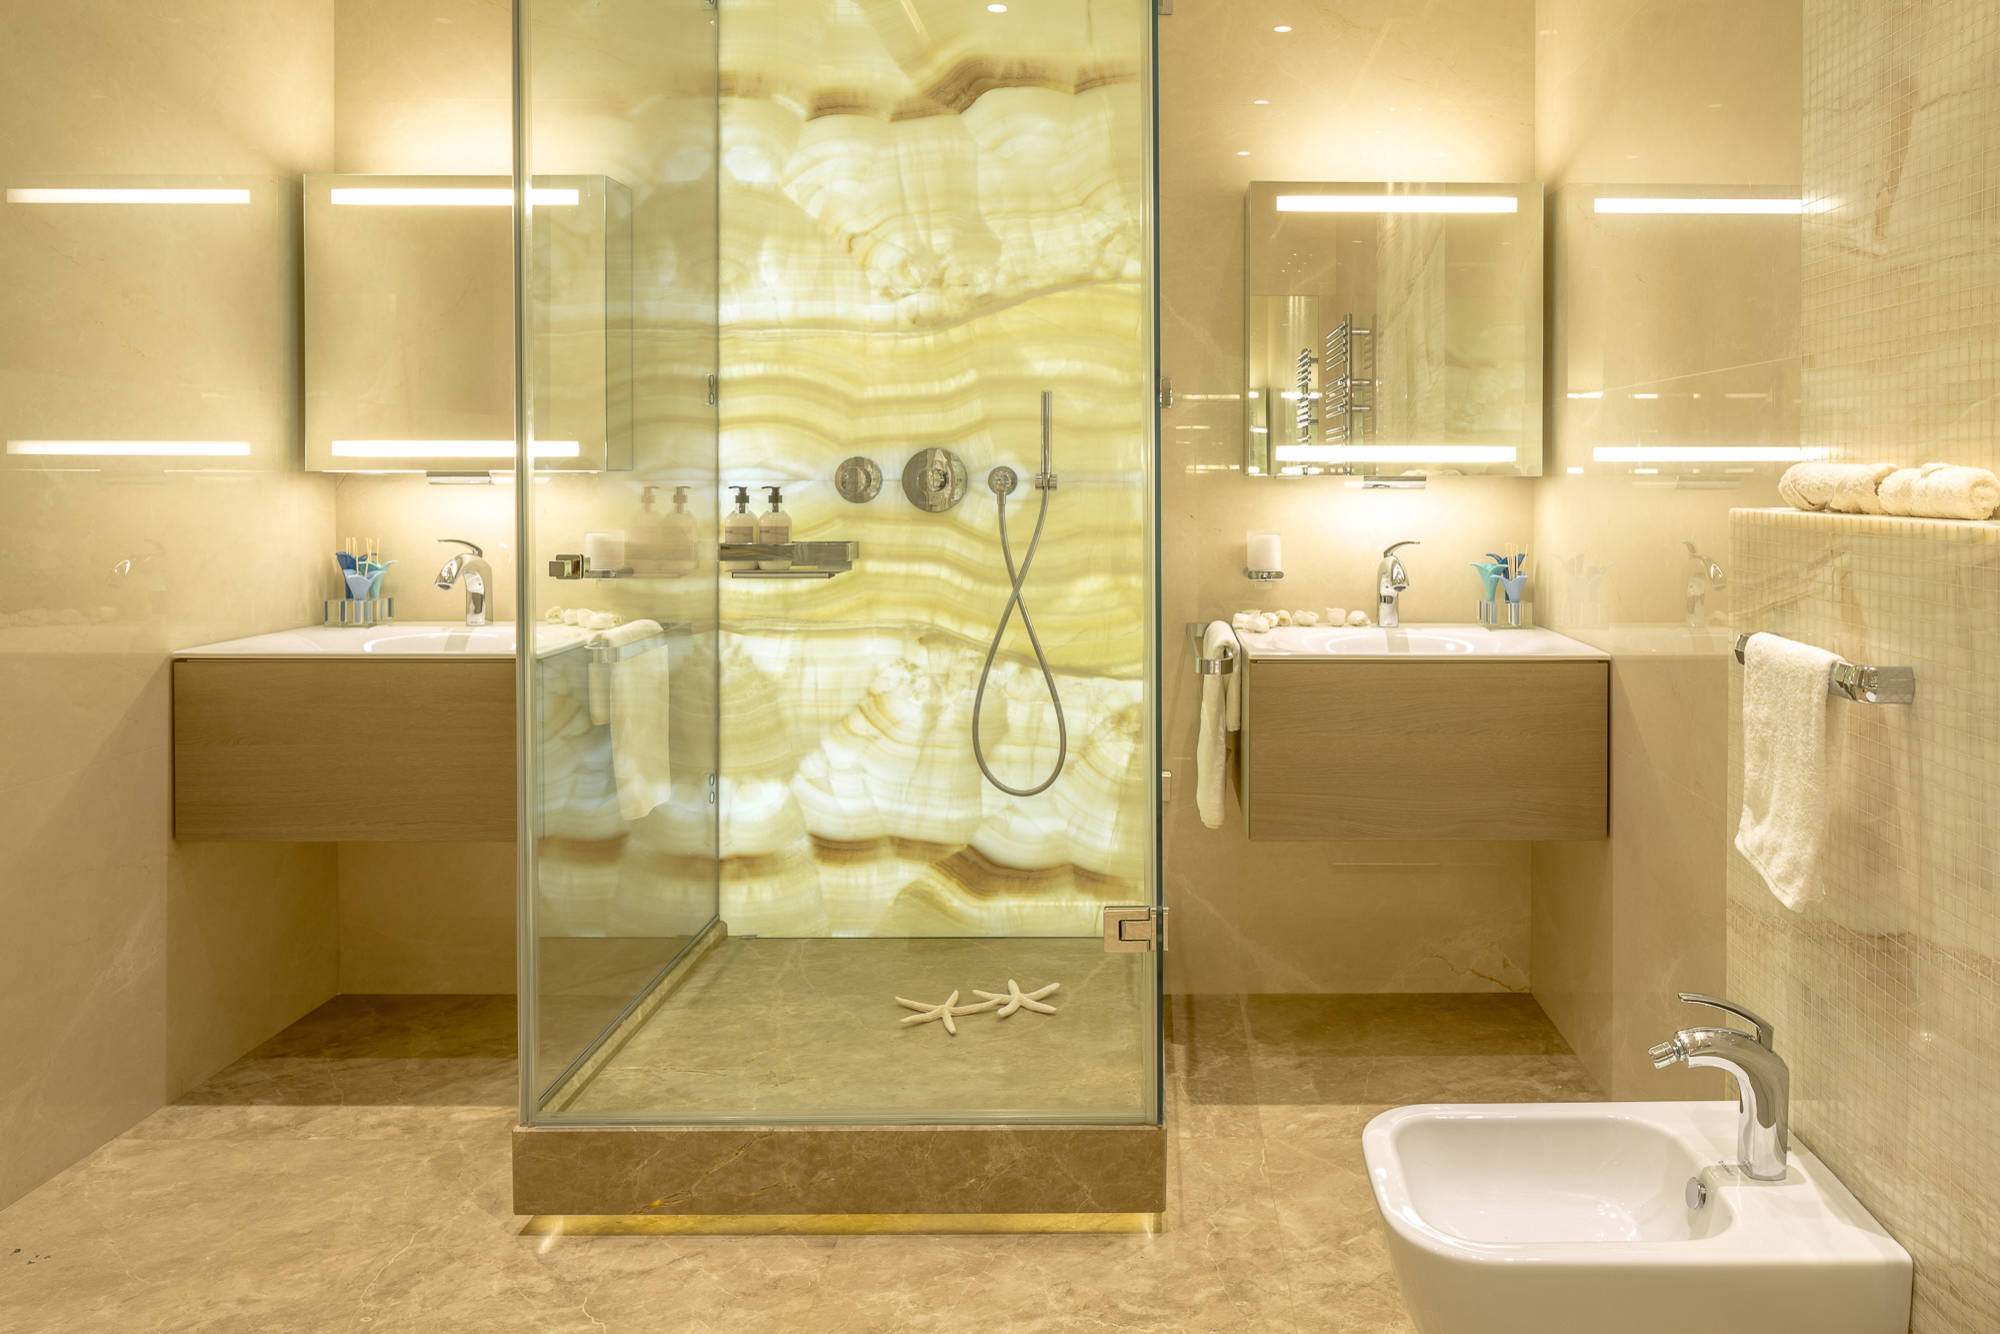 75 Beautiful Yellow Marble Tile Bathroom Pictures Ideas February 2021 Houzz